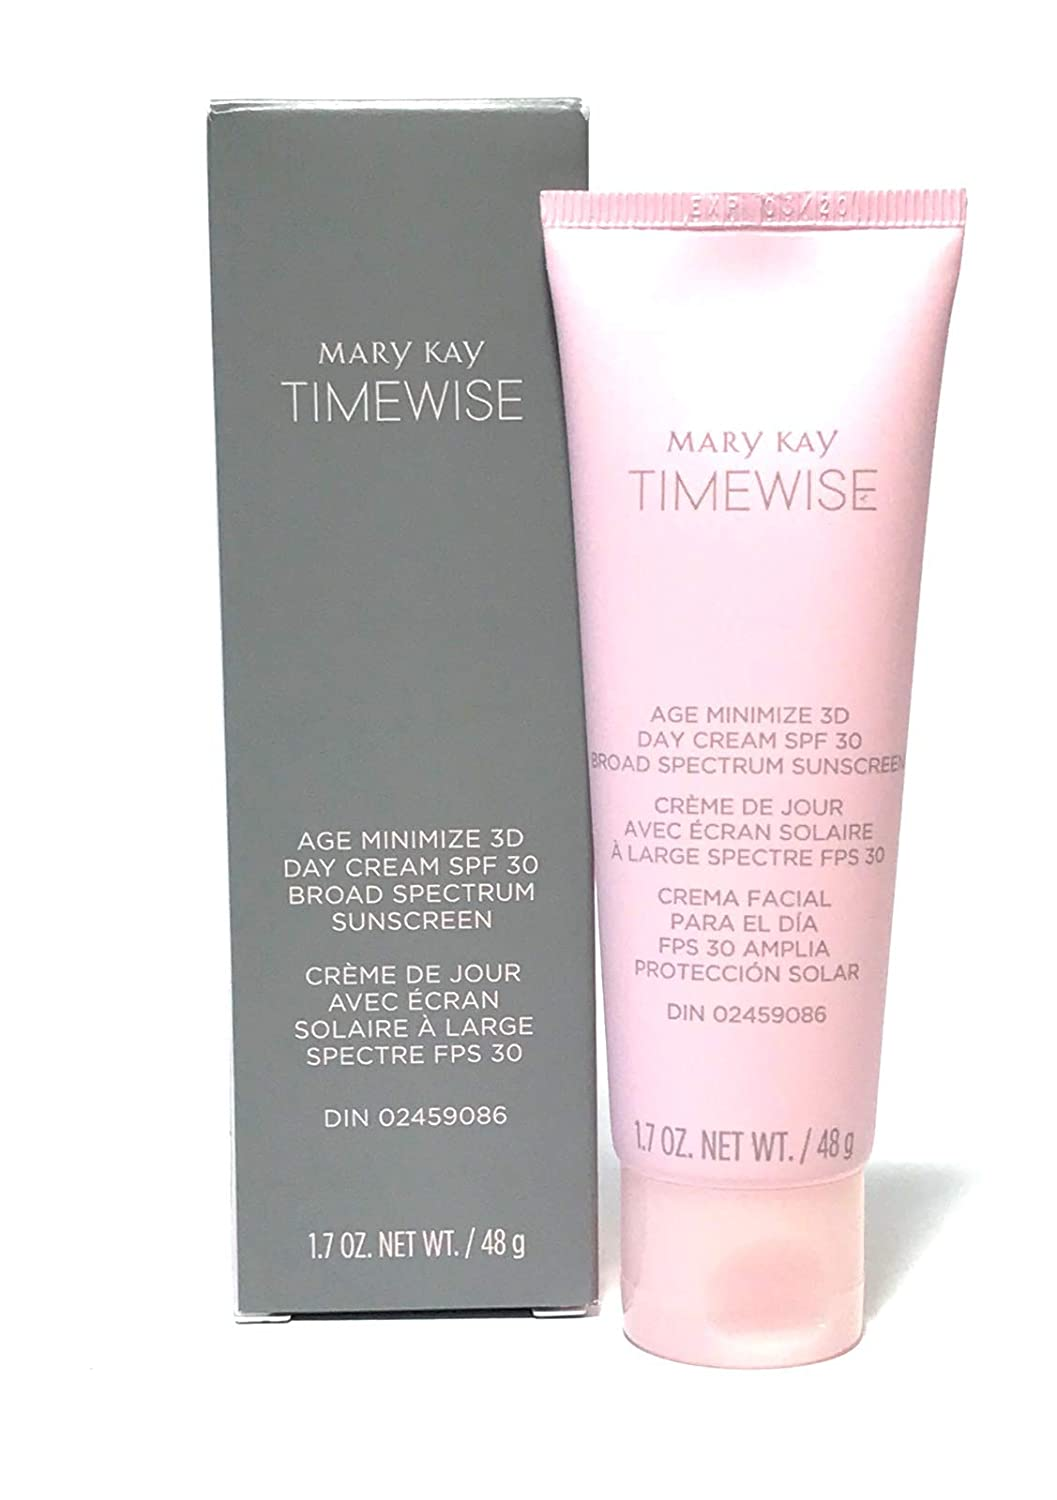 Mary Kay TimeWise Age Minimize 3D Day Cream (Non-SPF) 1.7 oz / 48g - Combination Oily Skin